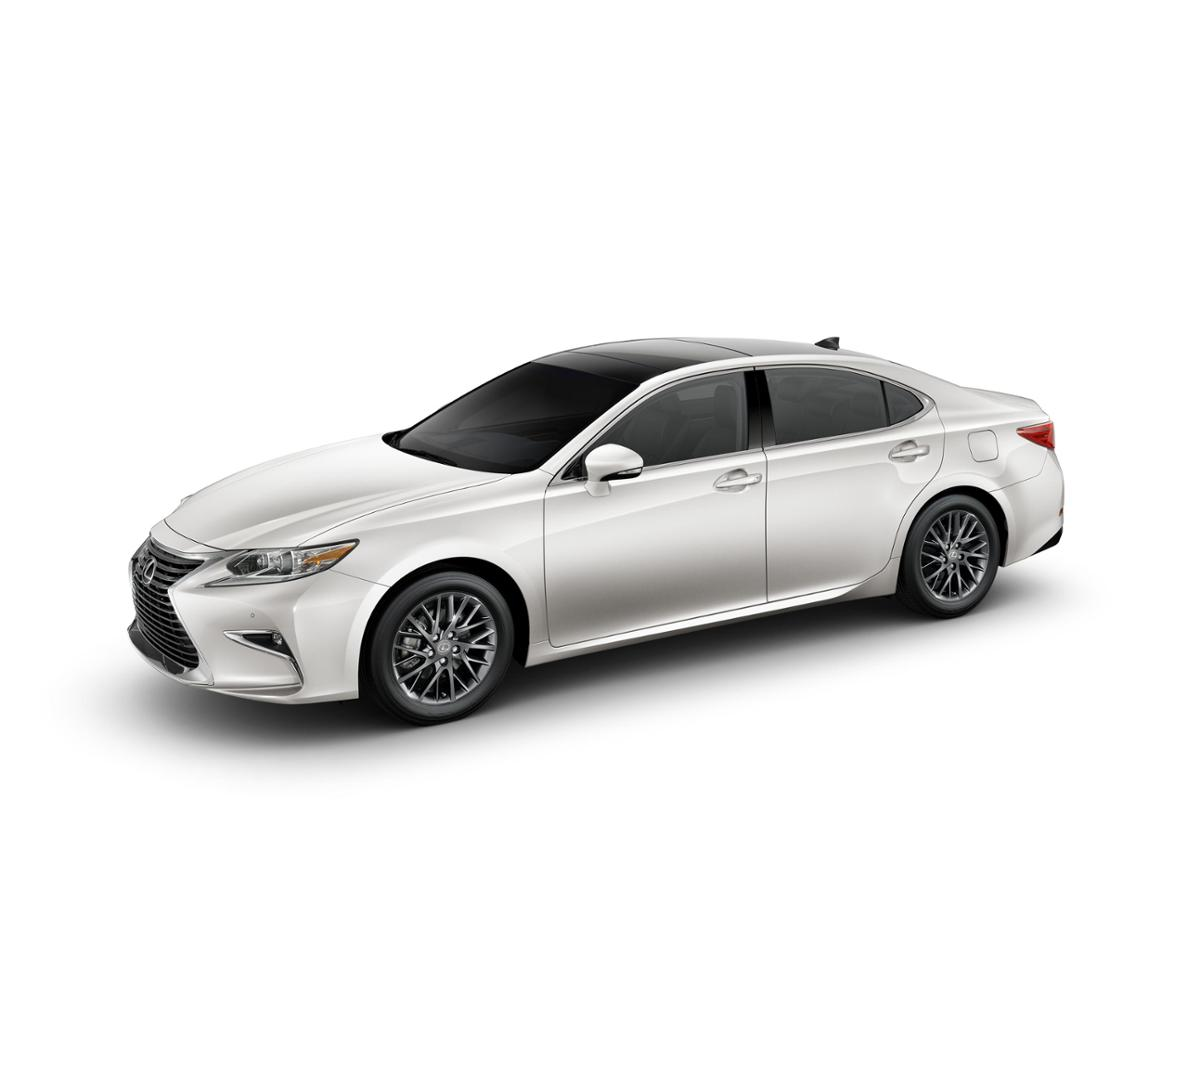 2018 lexus es 350 for sale in tustin 58abk1gg7ju111901 tustin lexus. Black Bedroom Furniture Sets. Home Design Ideas